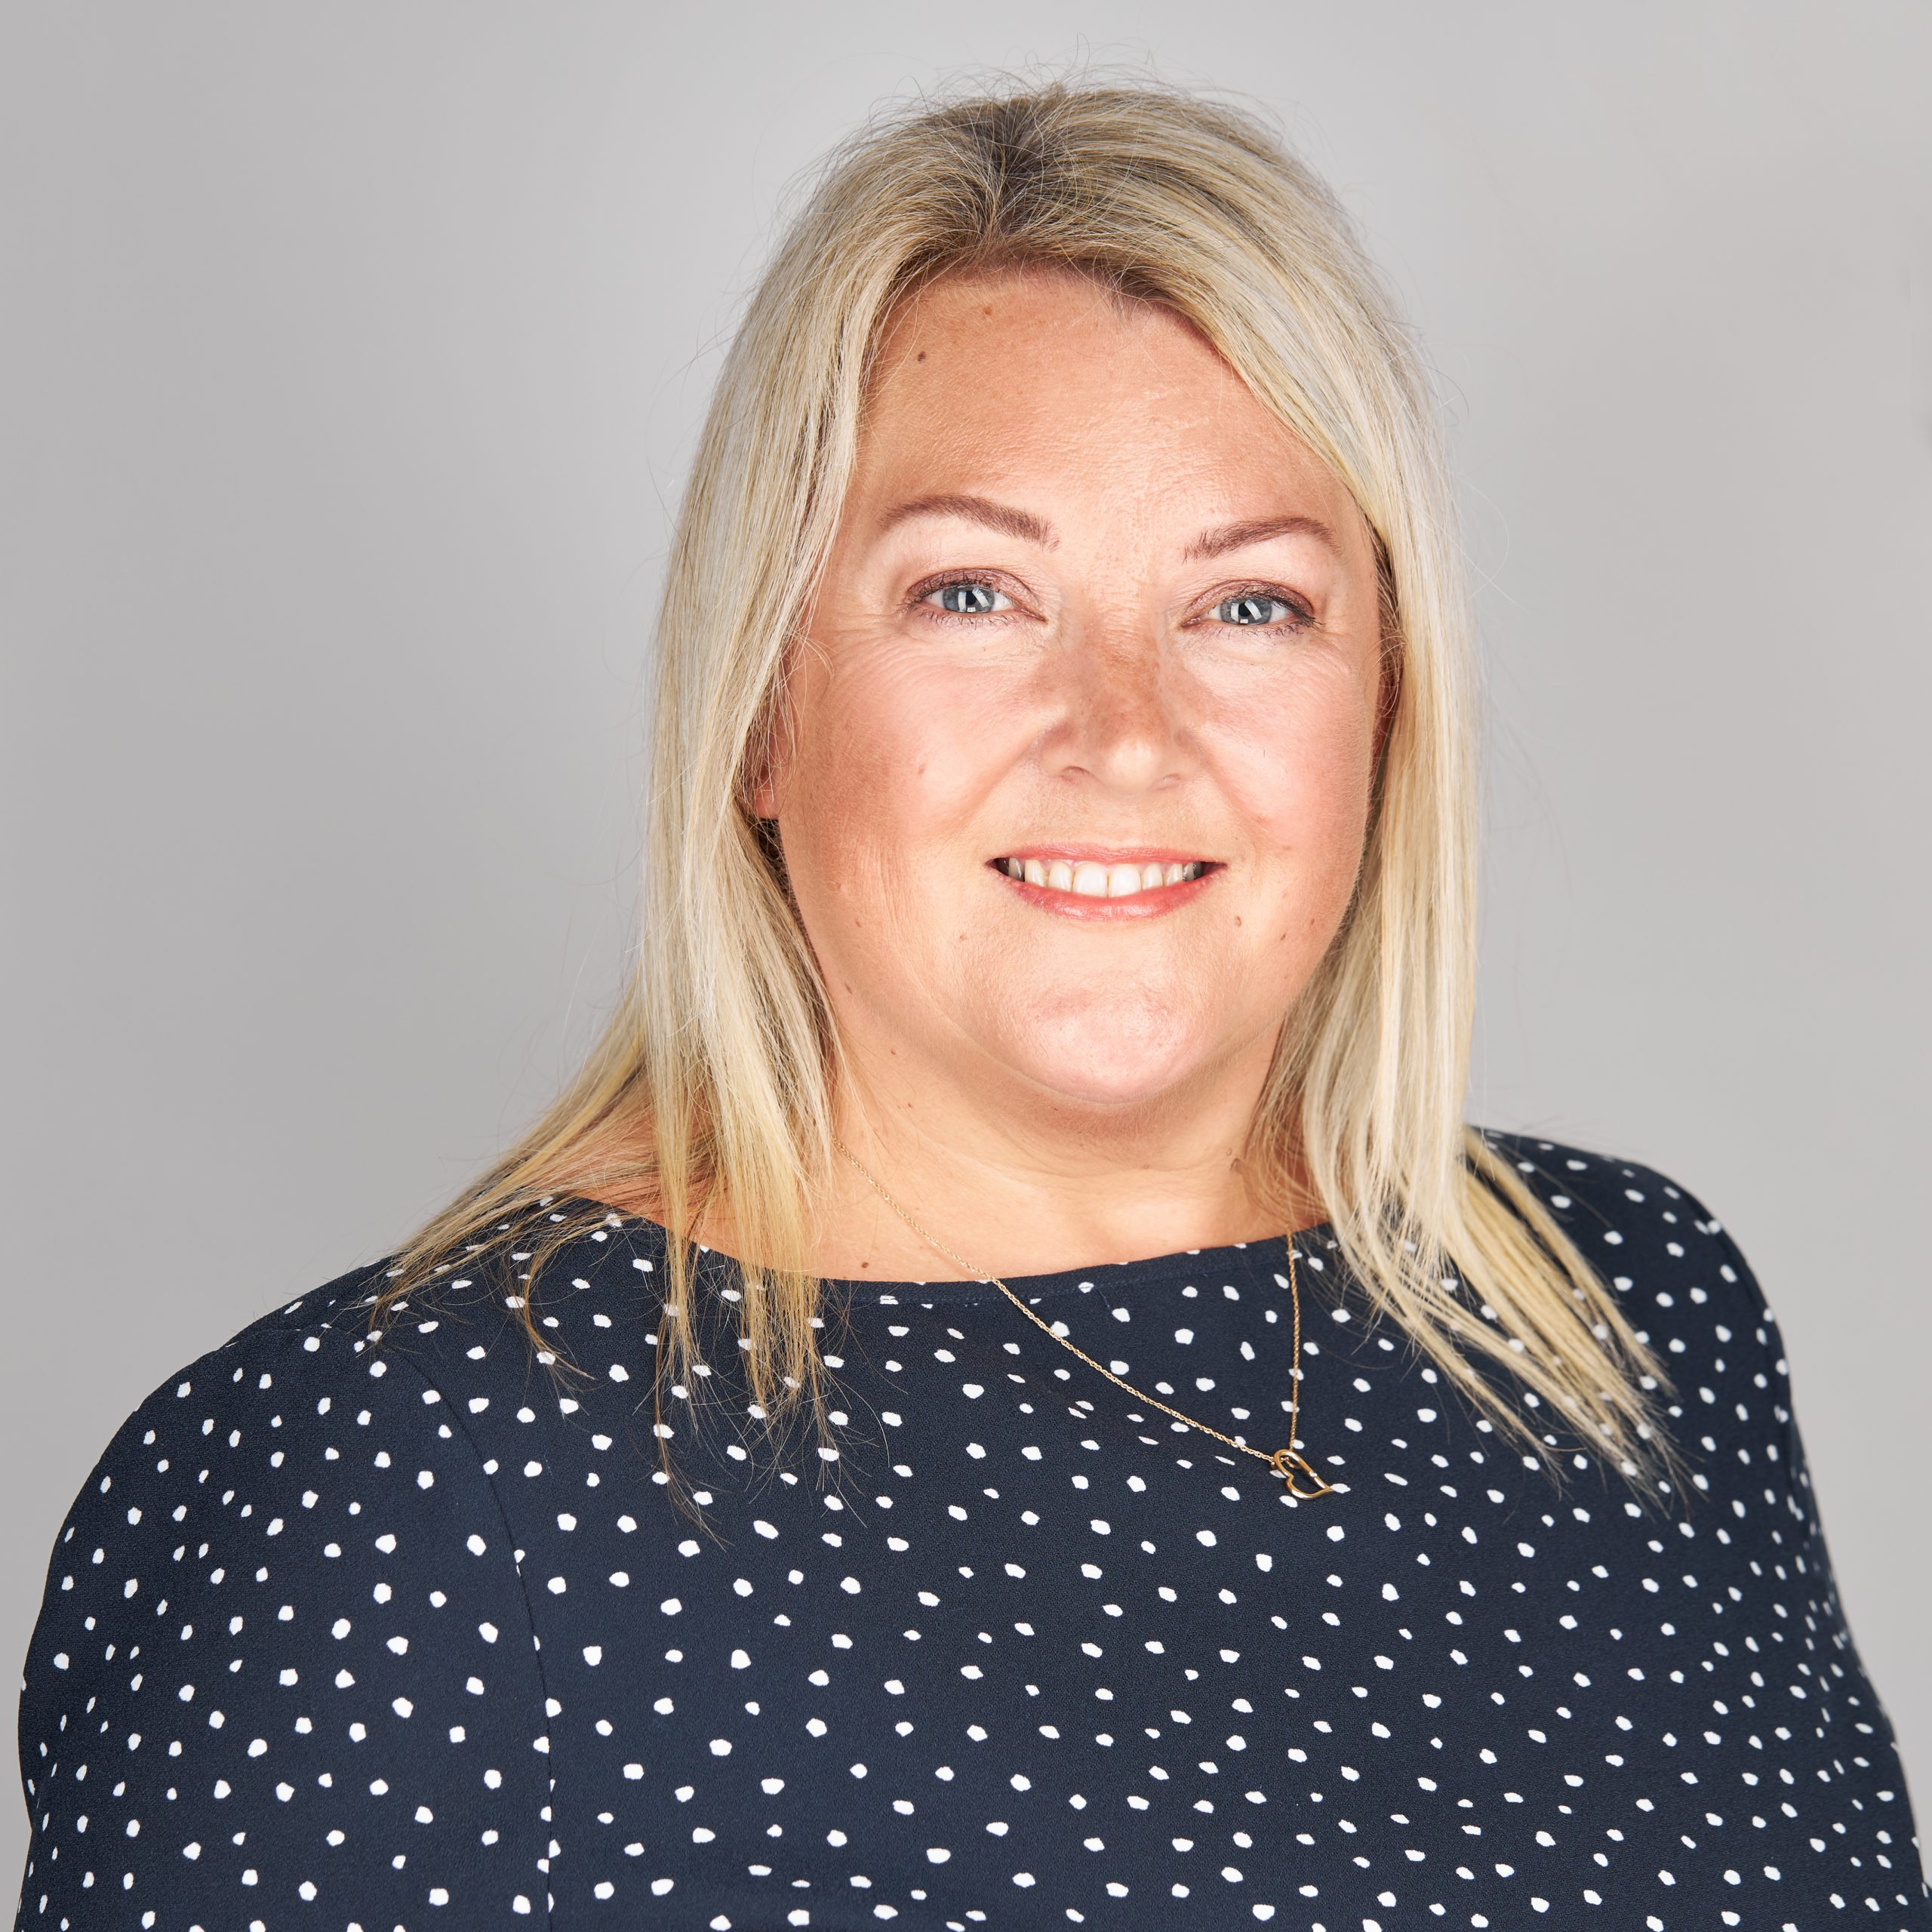 Laura Hartley, Managing Director - LHR Recruitment & Retention